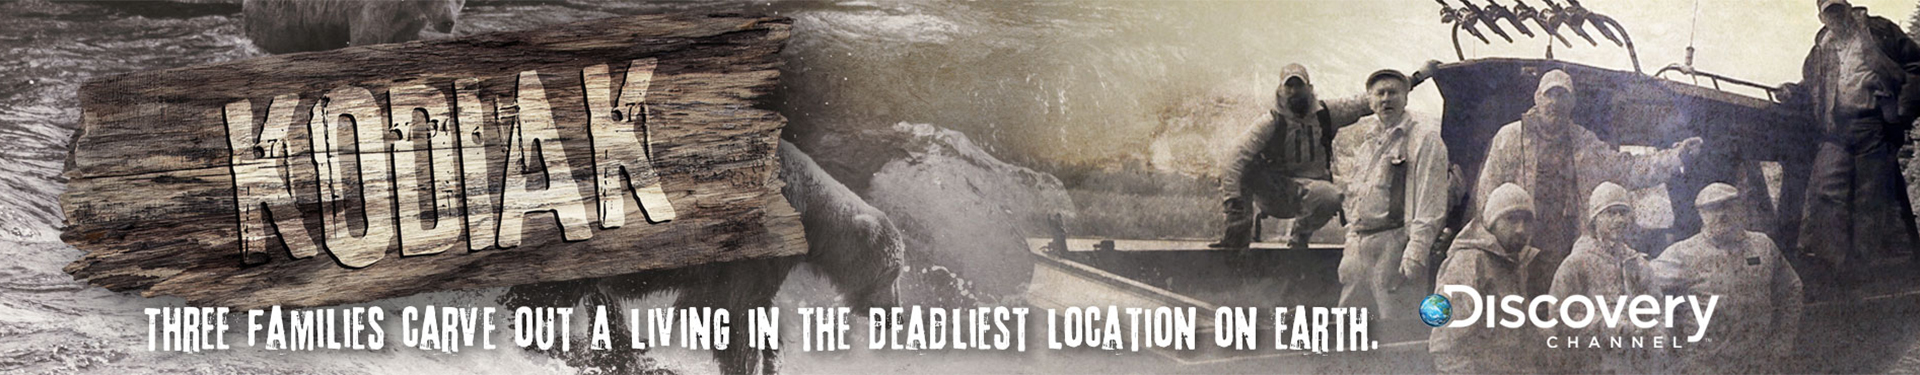 Three families carve out aliving in a deadliest location on earth.